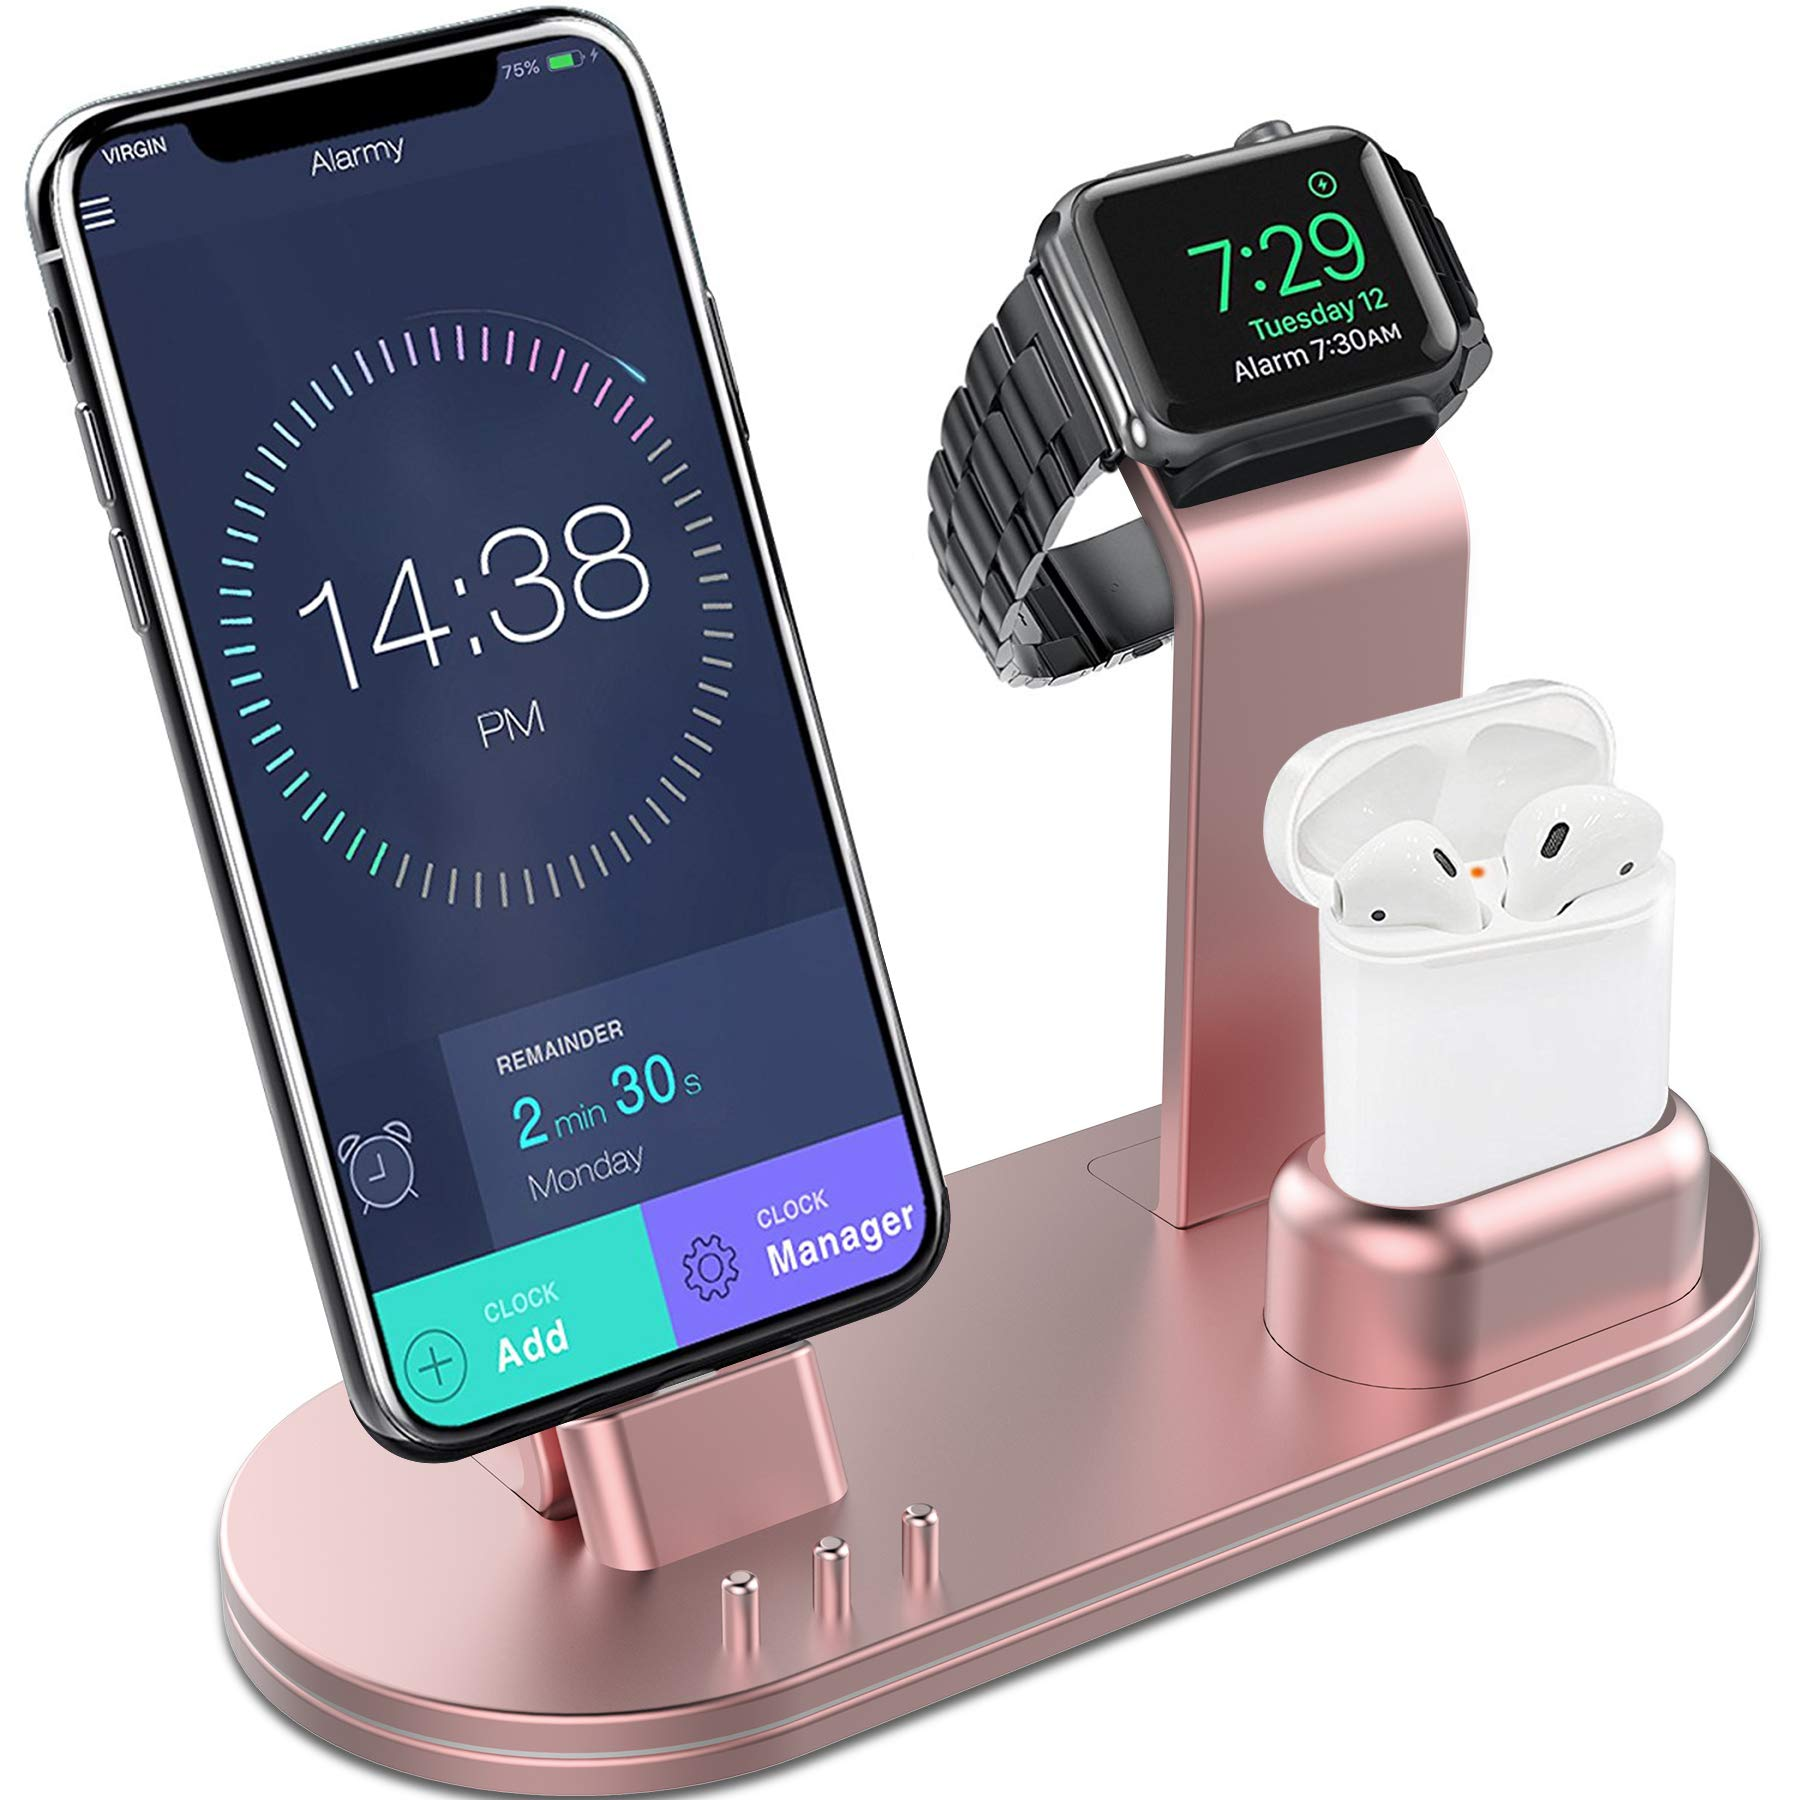 OLEBR Charging Stand Aluminum Alloy Charging Docks Suitable for iWatch Series 4/3/2/1/ AirPods/iPhone Xs/iPhone Xs Max/iPhone XR/X/8/8Plus/7/7 Plus /6S /6S Plus/iPad-Rose Gold by OLEBR